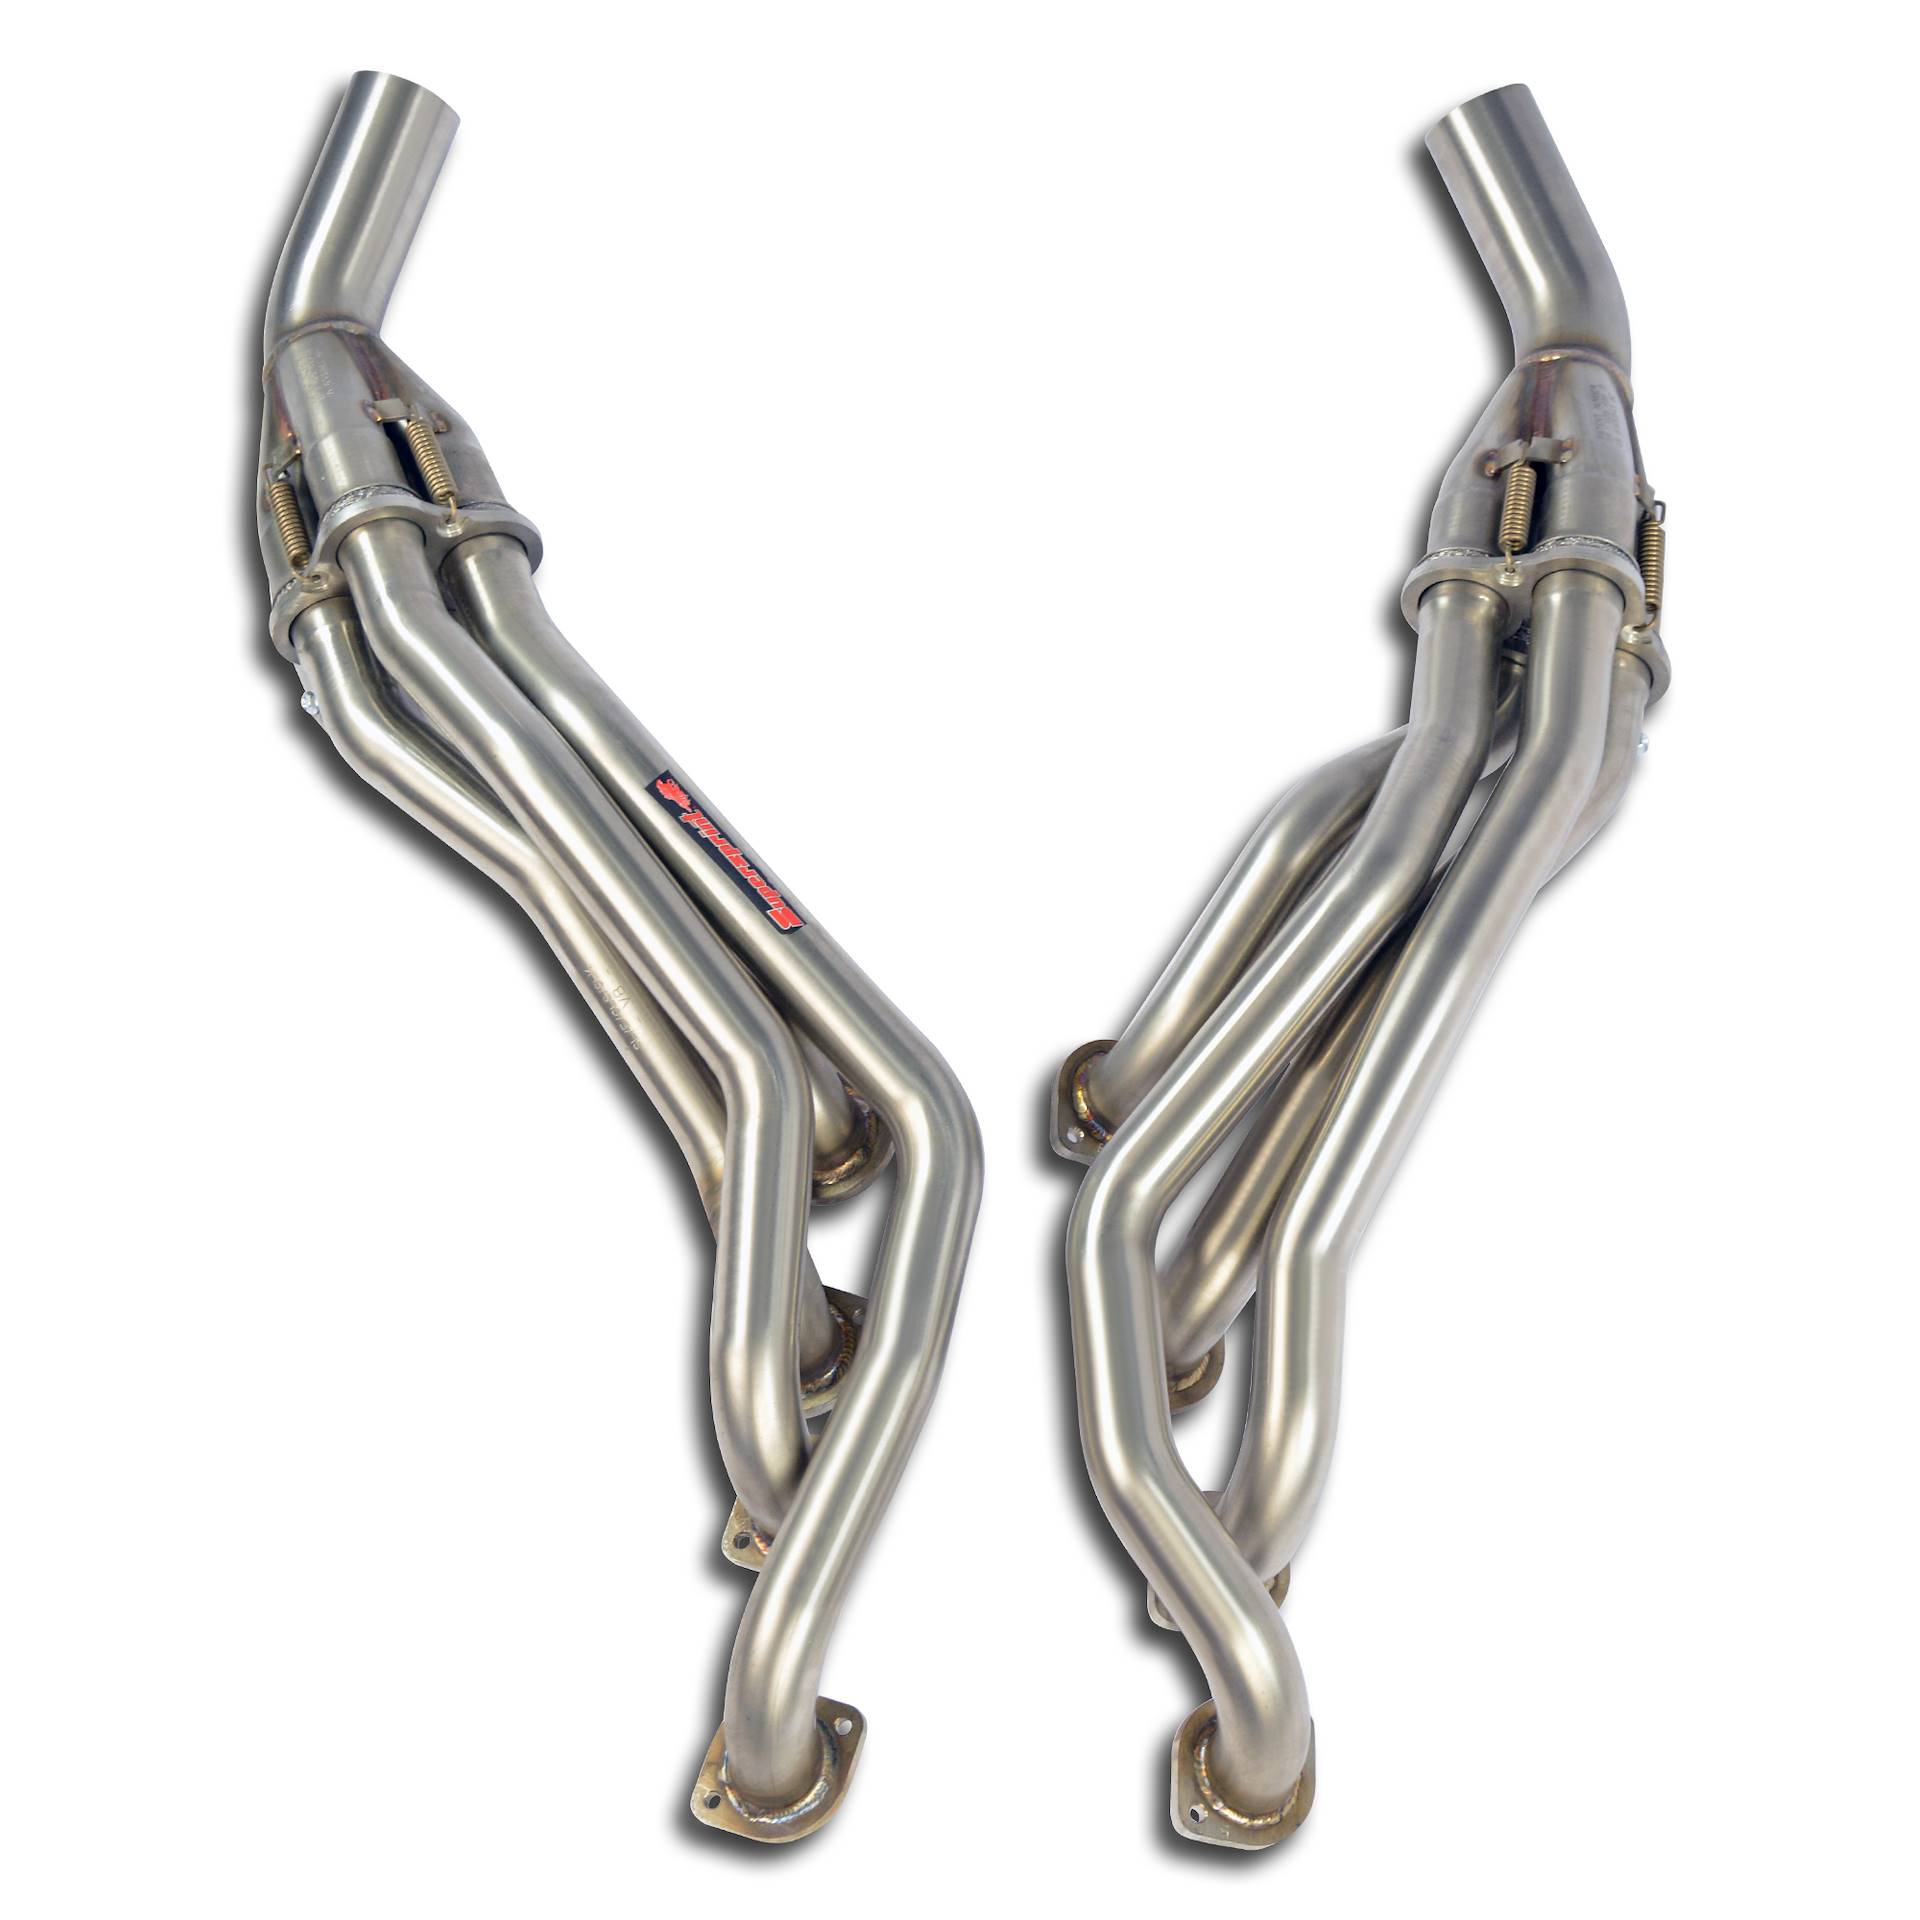 Mercedes AMG - MERCEDES A209 CLK DTM AMG 5.5l Cabrio Kompressor (582 Hp) 2006 Manifold Right - Left<br>(Left Hand Drive)<br>SUPERSPRINT DESIGN PATENT, performance exhaust systems